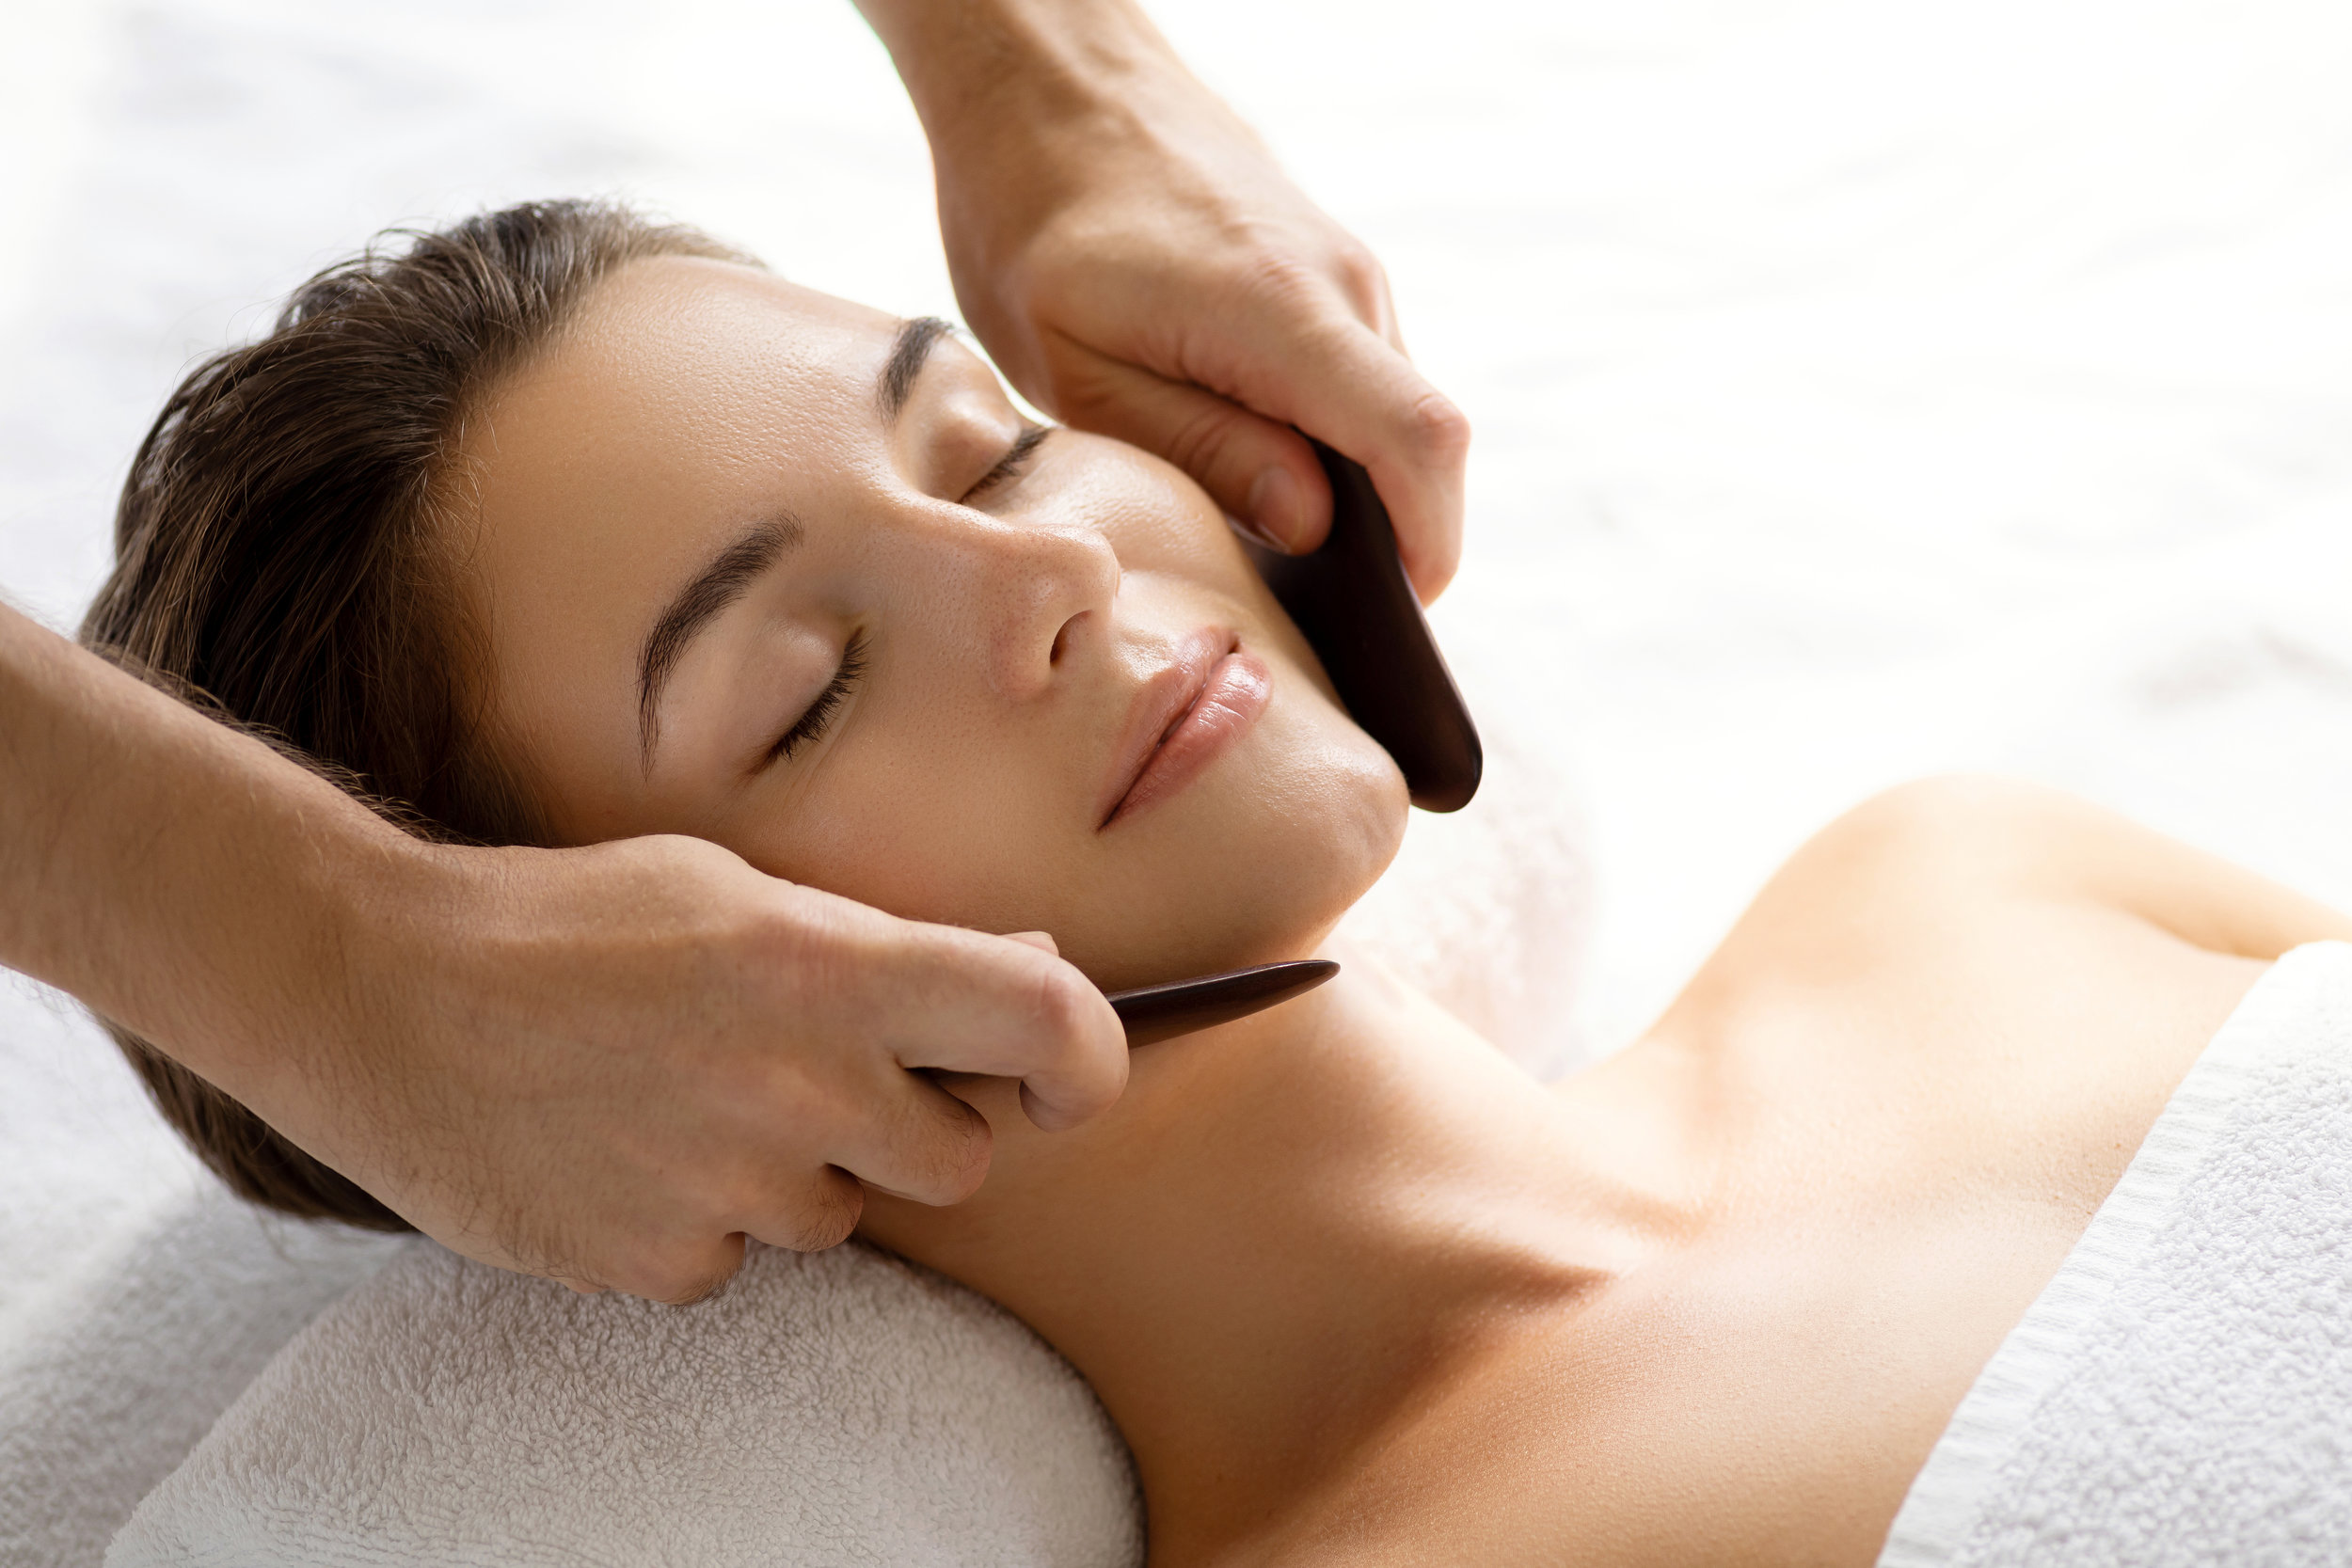 UO Radiant Glow Face Care  Inspired from the Far East.£40 25 mins - A rejuvenating and relaxing unique treatment of the face, chest, neck and shoulders. Enjoy softer, brighter skin and a glowing complexion. Also combatting fine lines, wrinkles, eye bags and other signs of aging. Incorporating the use of traditional antiaging techniques of Gua Sha, Dermo Roller, acupressure points, meridian lines and massage of the superficial and deep muscles along with lymphatic drainage